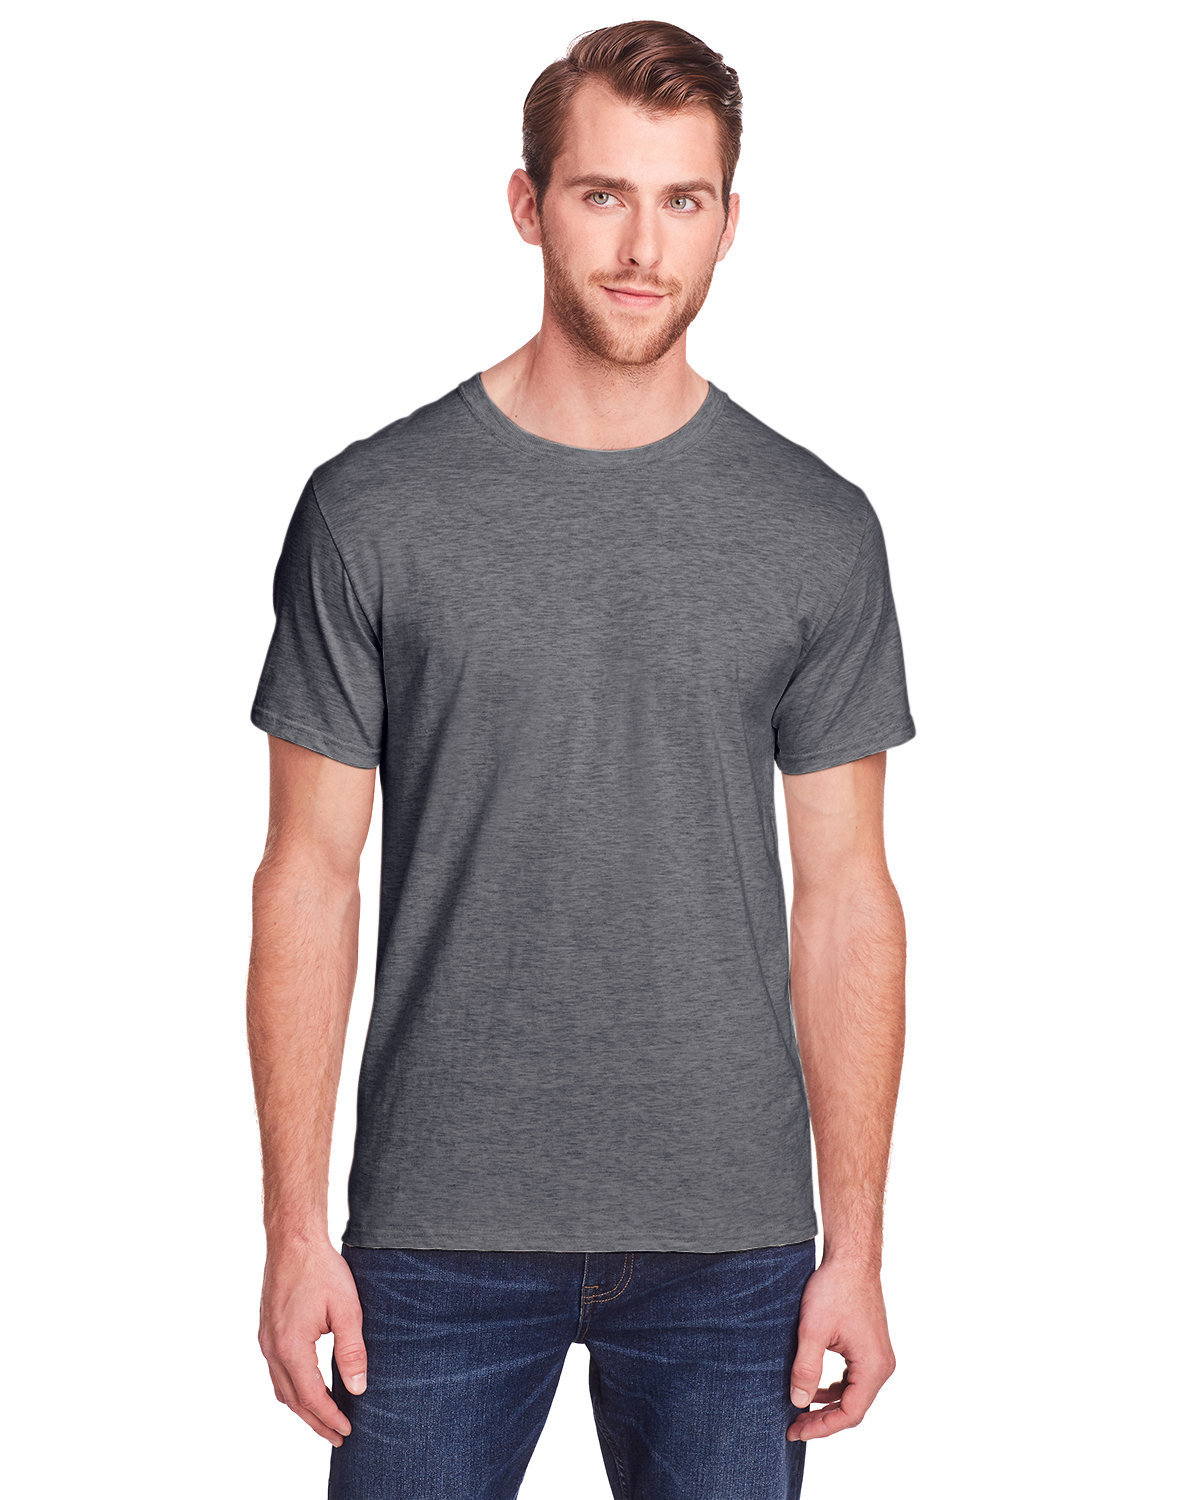 Fruit of the Loom Adult ICONIC™ T-Shirt CHARCOAL HEATHER